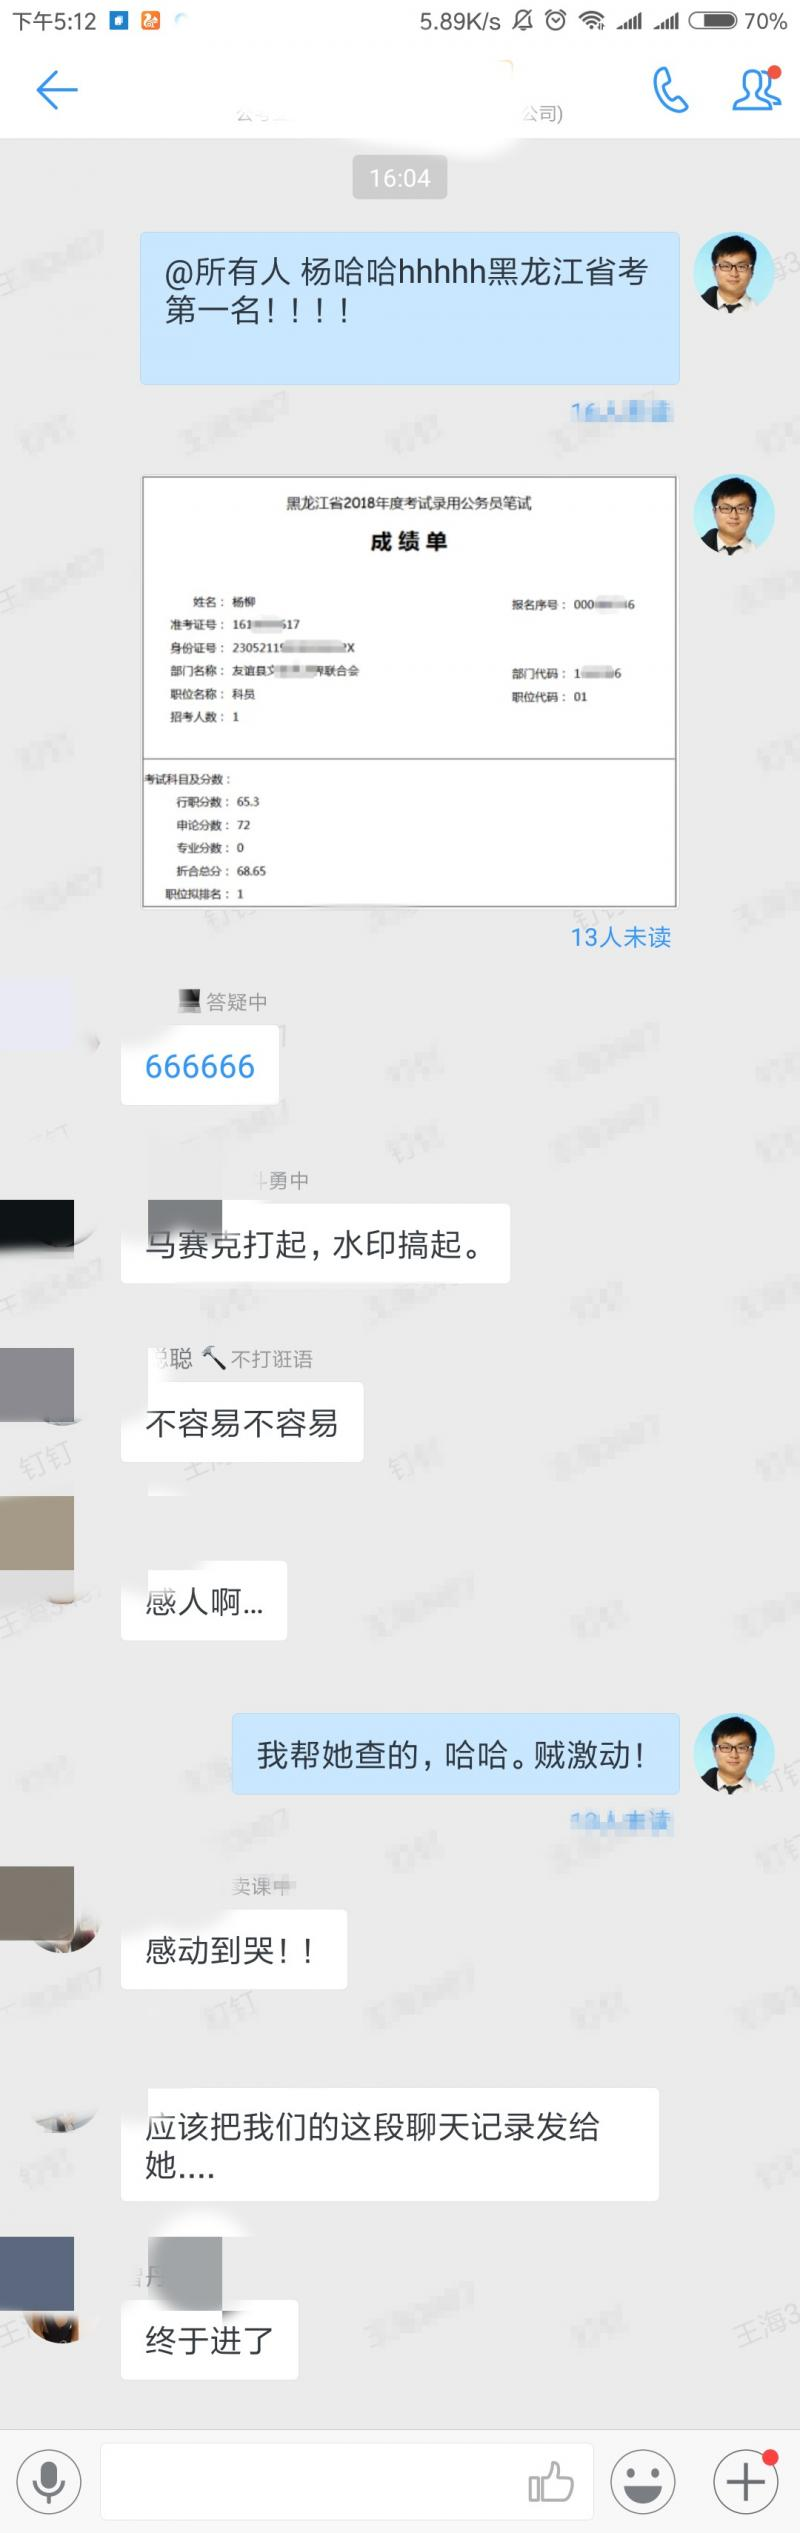 Screenshot_2018-05-15-17-12-43-739_com.alibaba.android.rimet_副本.jpg